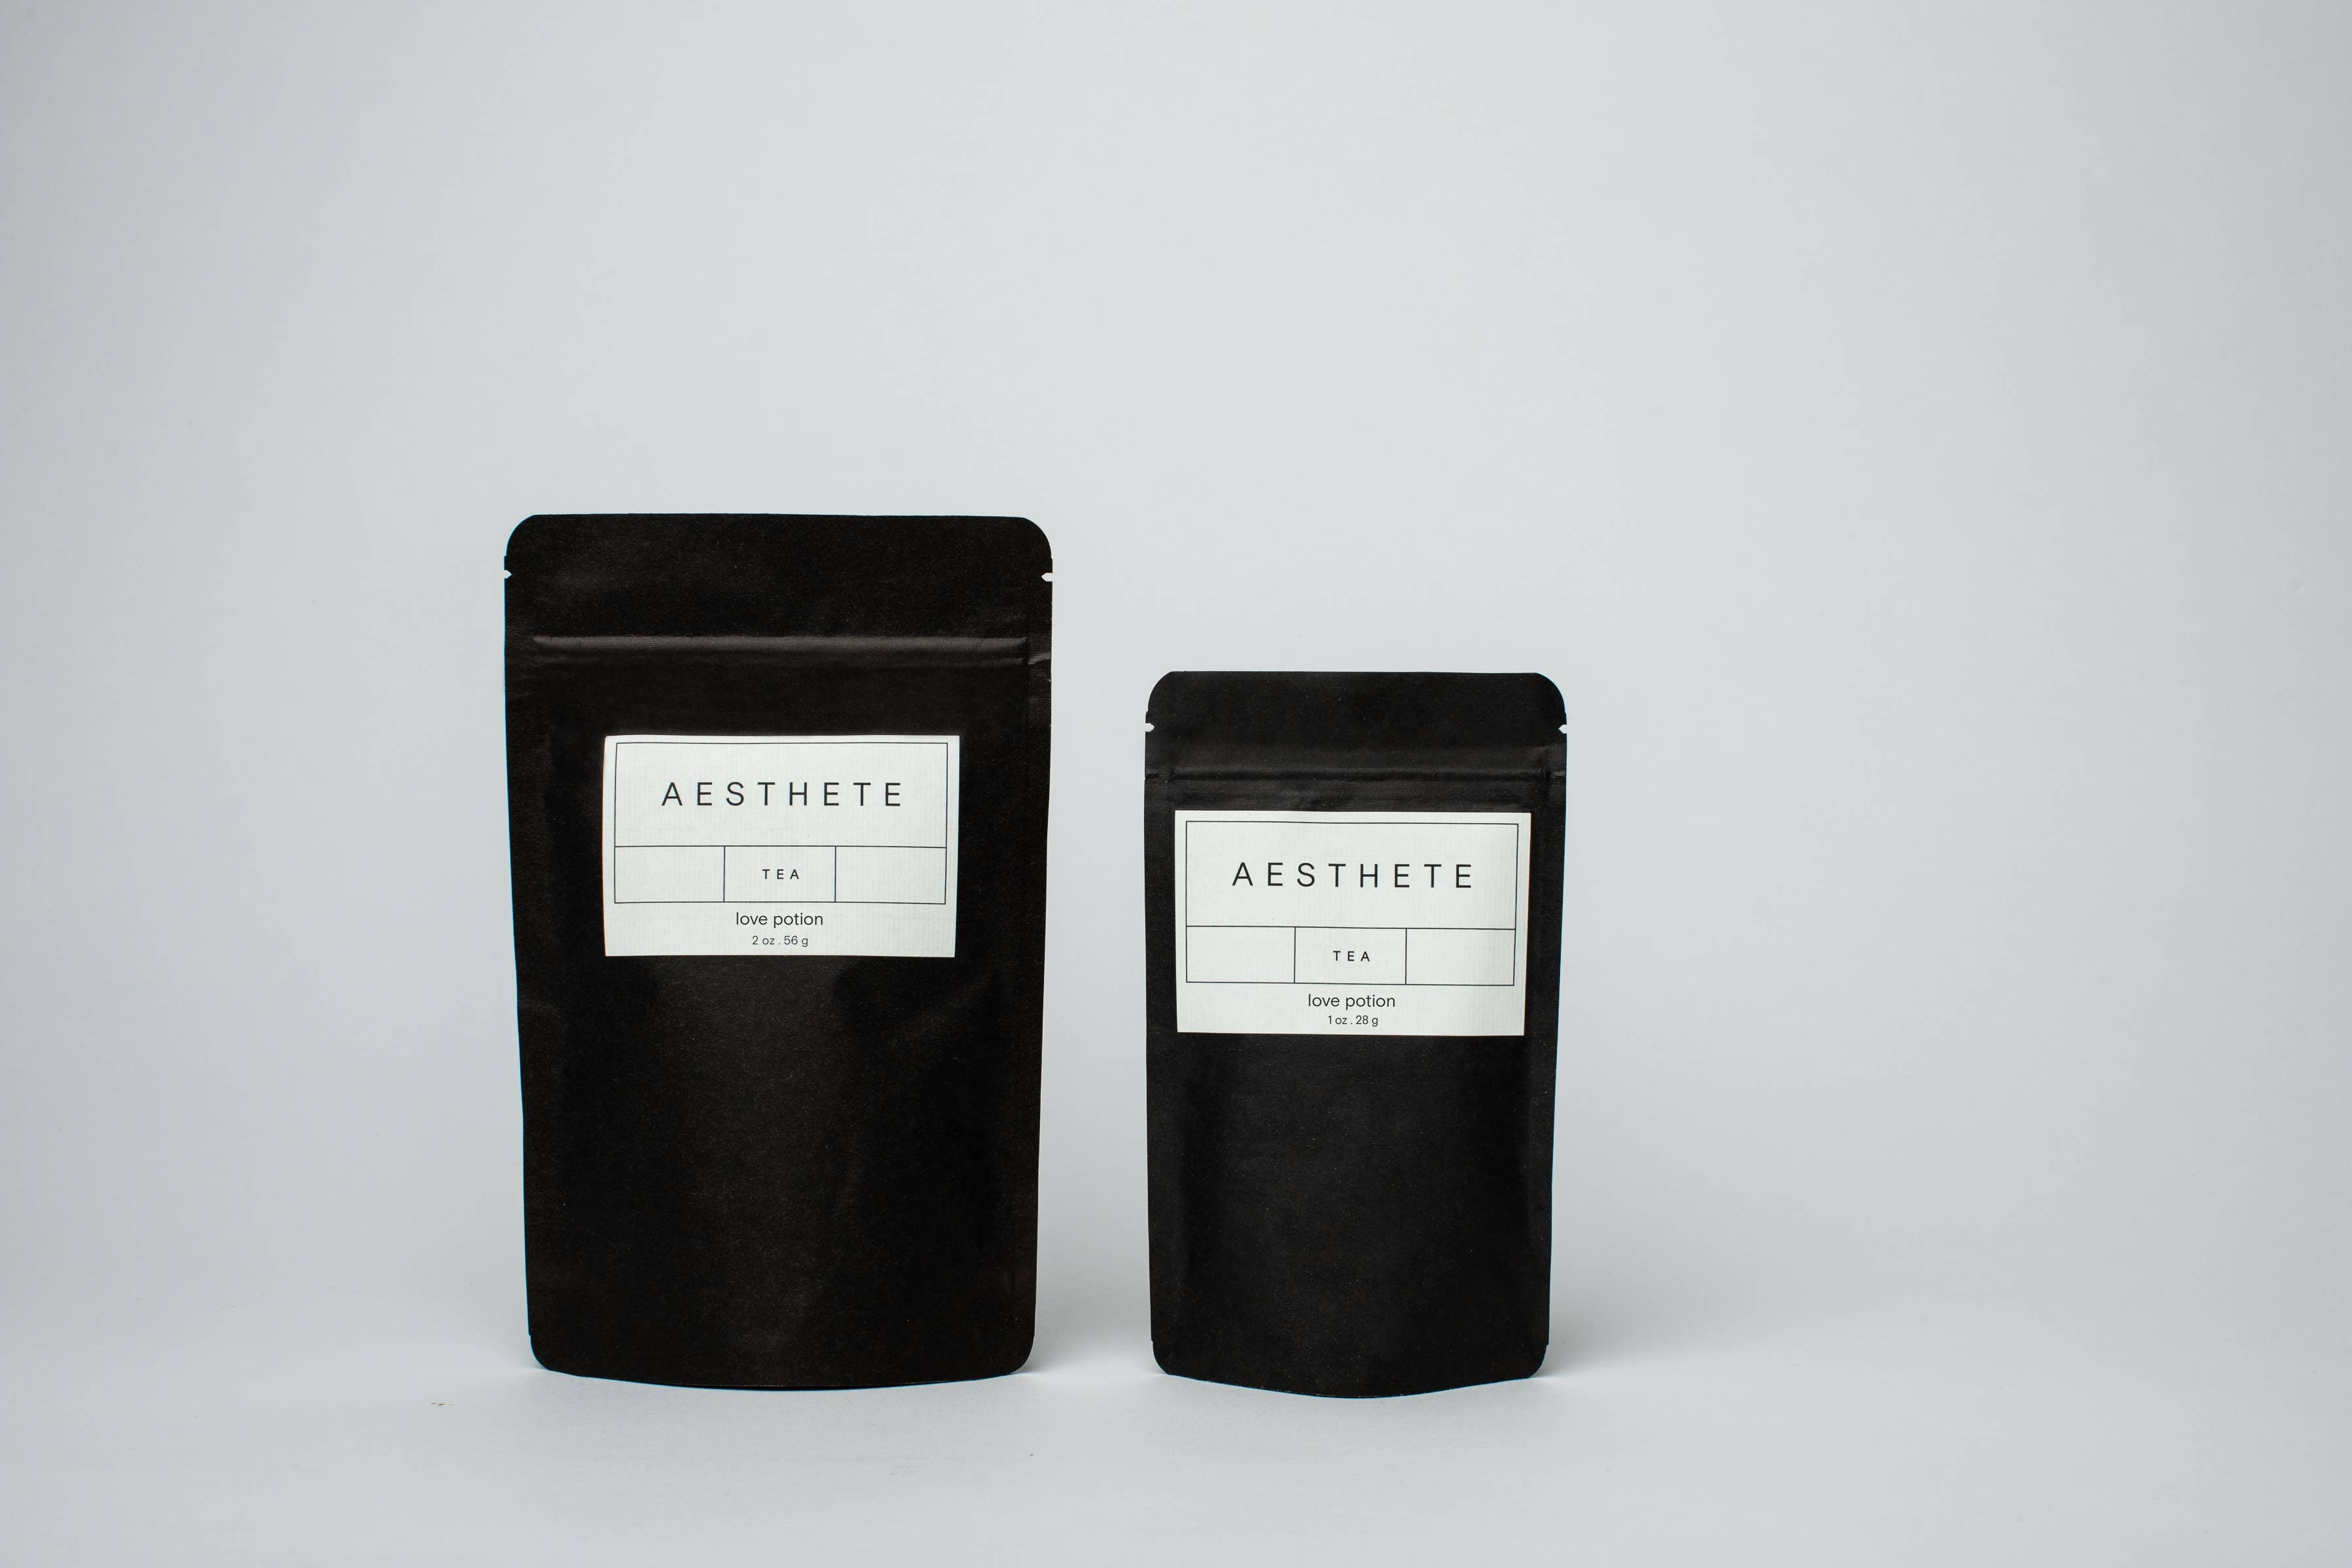 Aesthete Tea - 2 oz Love Potion Black Tea